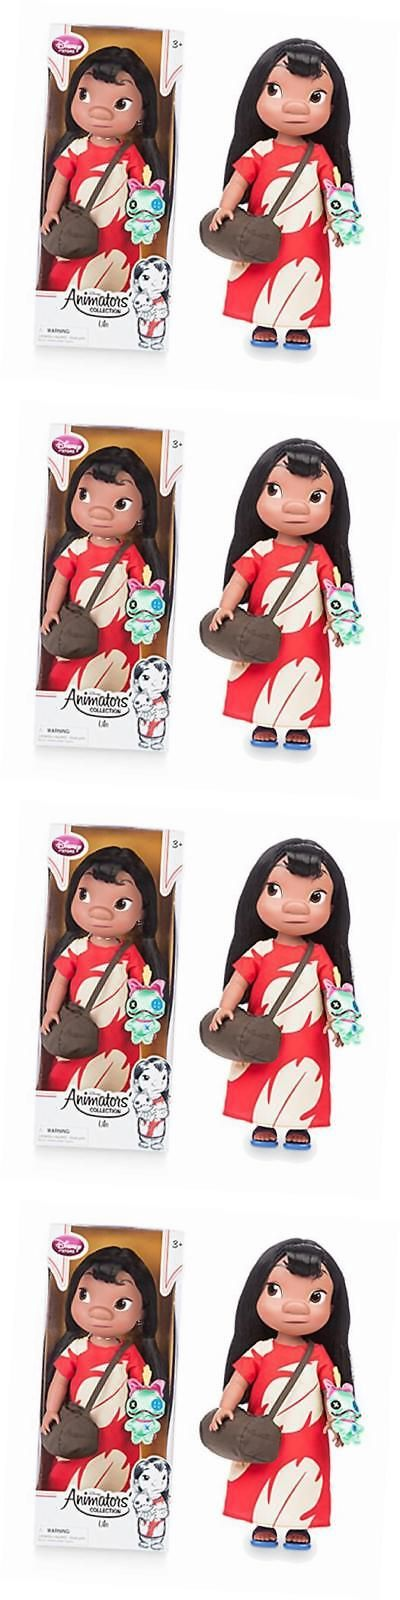 Lilo and Stitch 44035: Animators Collection Lilo Doll - Lilo And Stitch - 16 - New -> BUY IT NOW ONLY: $55.46 on eBay!